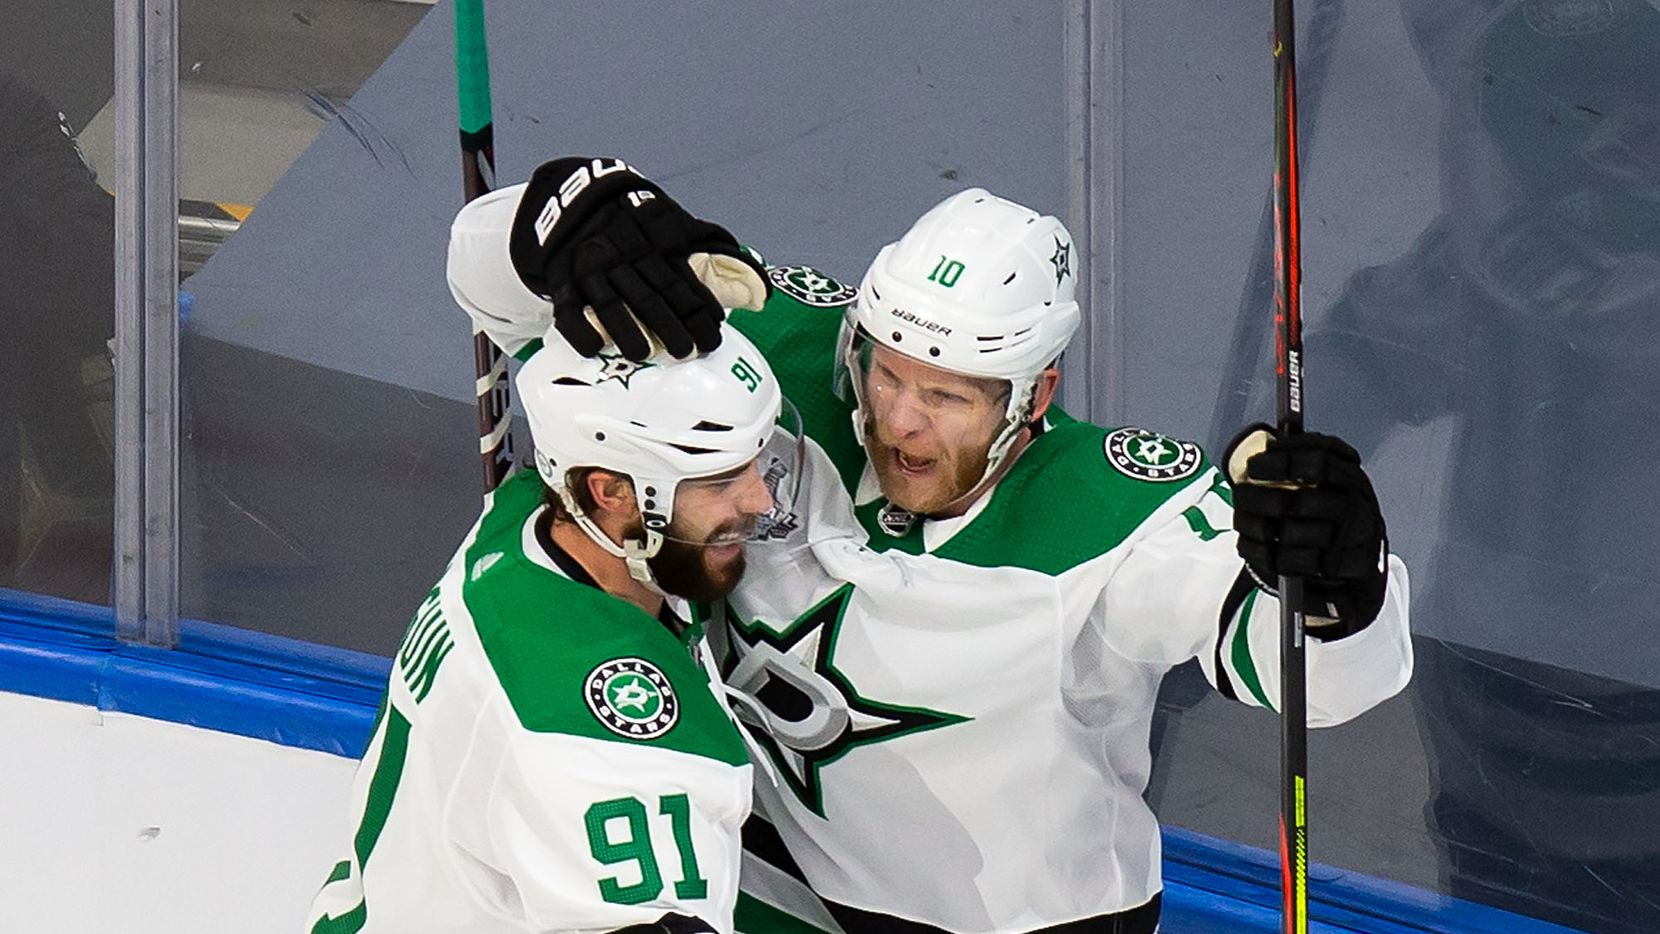 Tyler Seguin (91), Corey Perry (10) and Joel Kiviranta (25) of the Dallas Stars celebrate Perry's goal against the Tampa Bay Lightning during Game Five of the Stanley Cup Final at Rogers Place in Edmonton, Alberta, Canada on Saturday, September 26, 2020. (Codie McLachlan/Special Contributor)